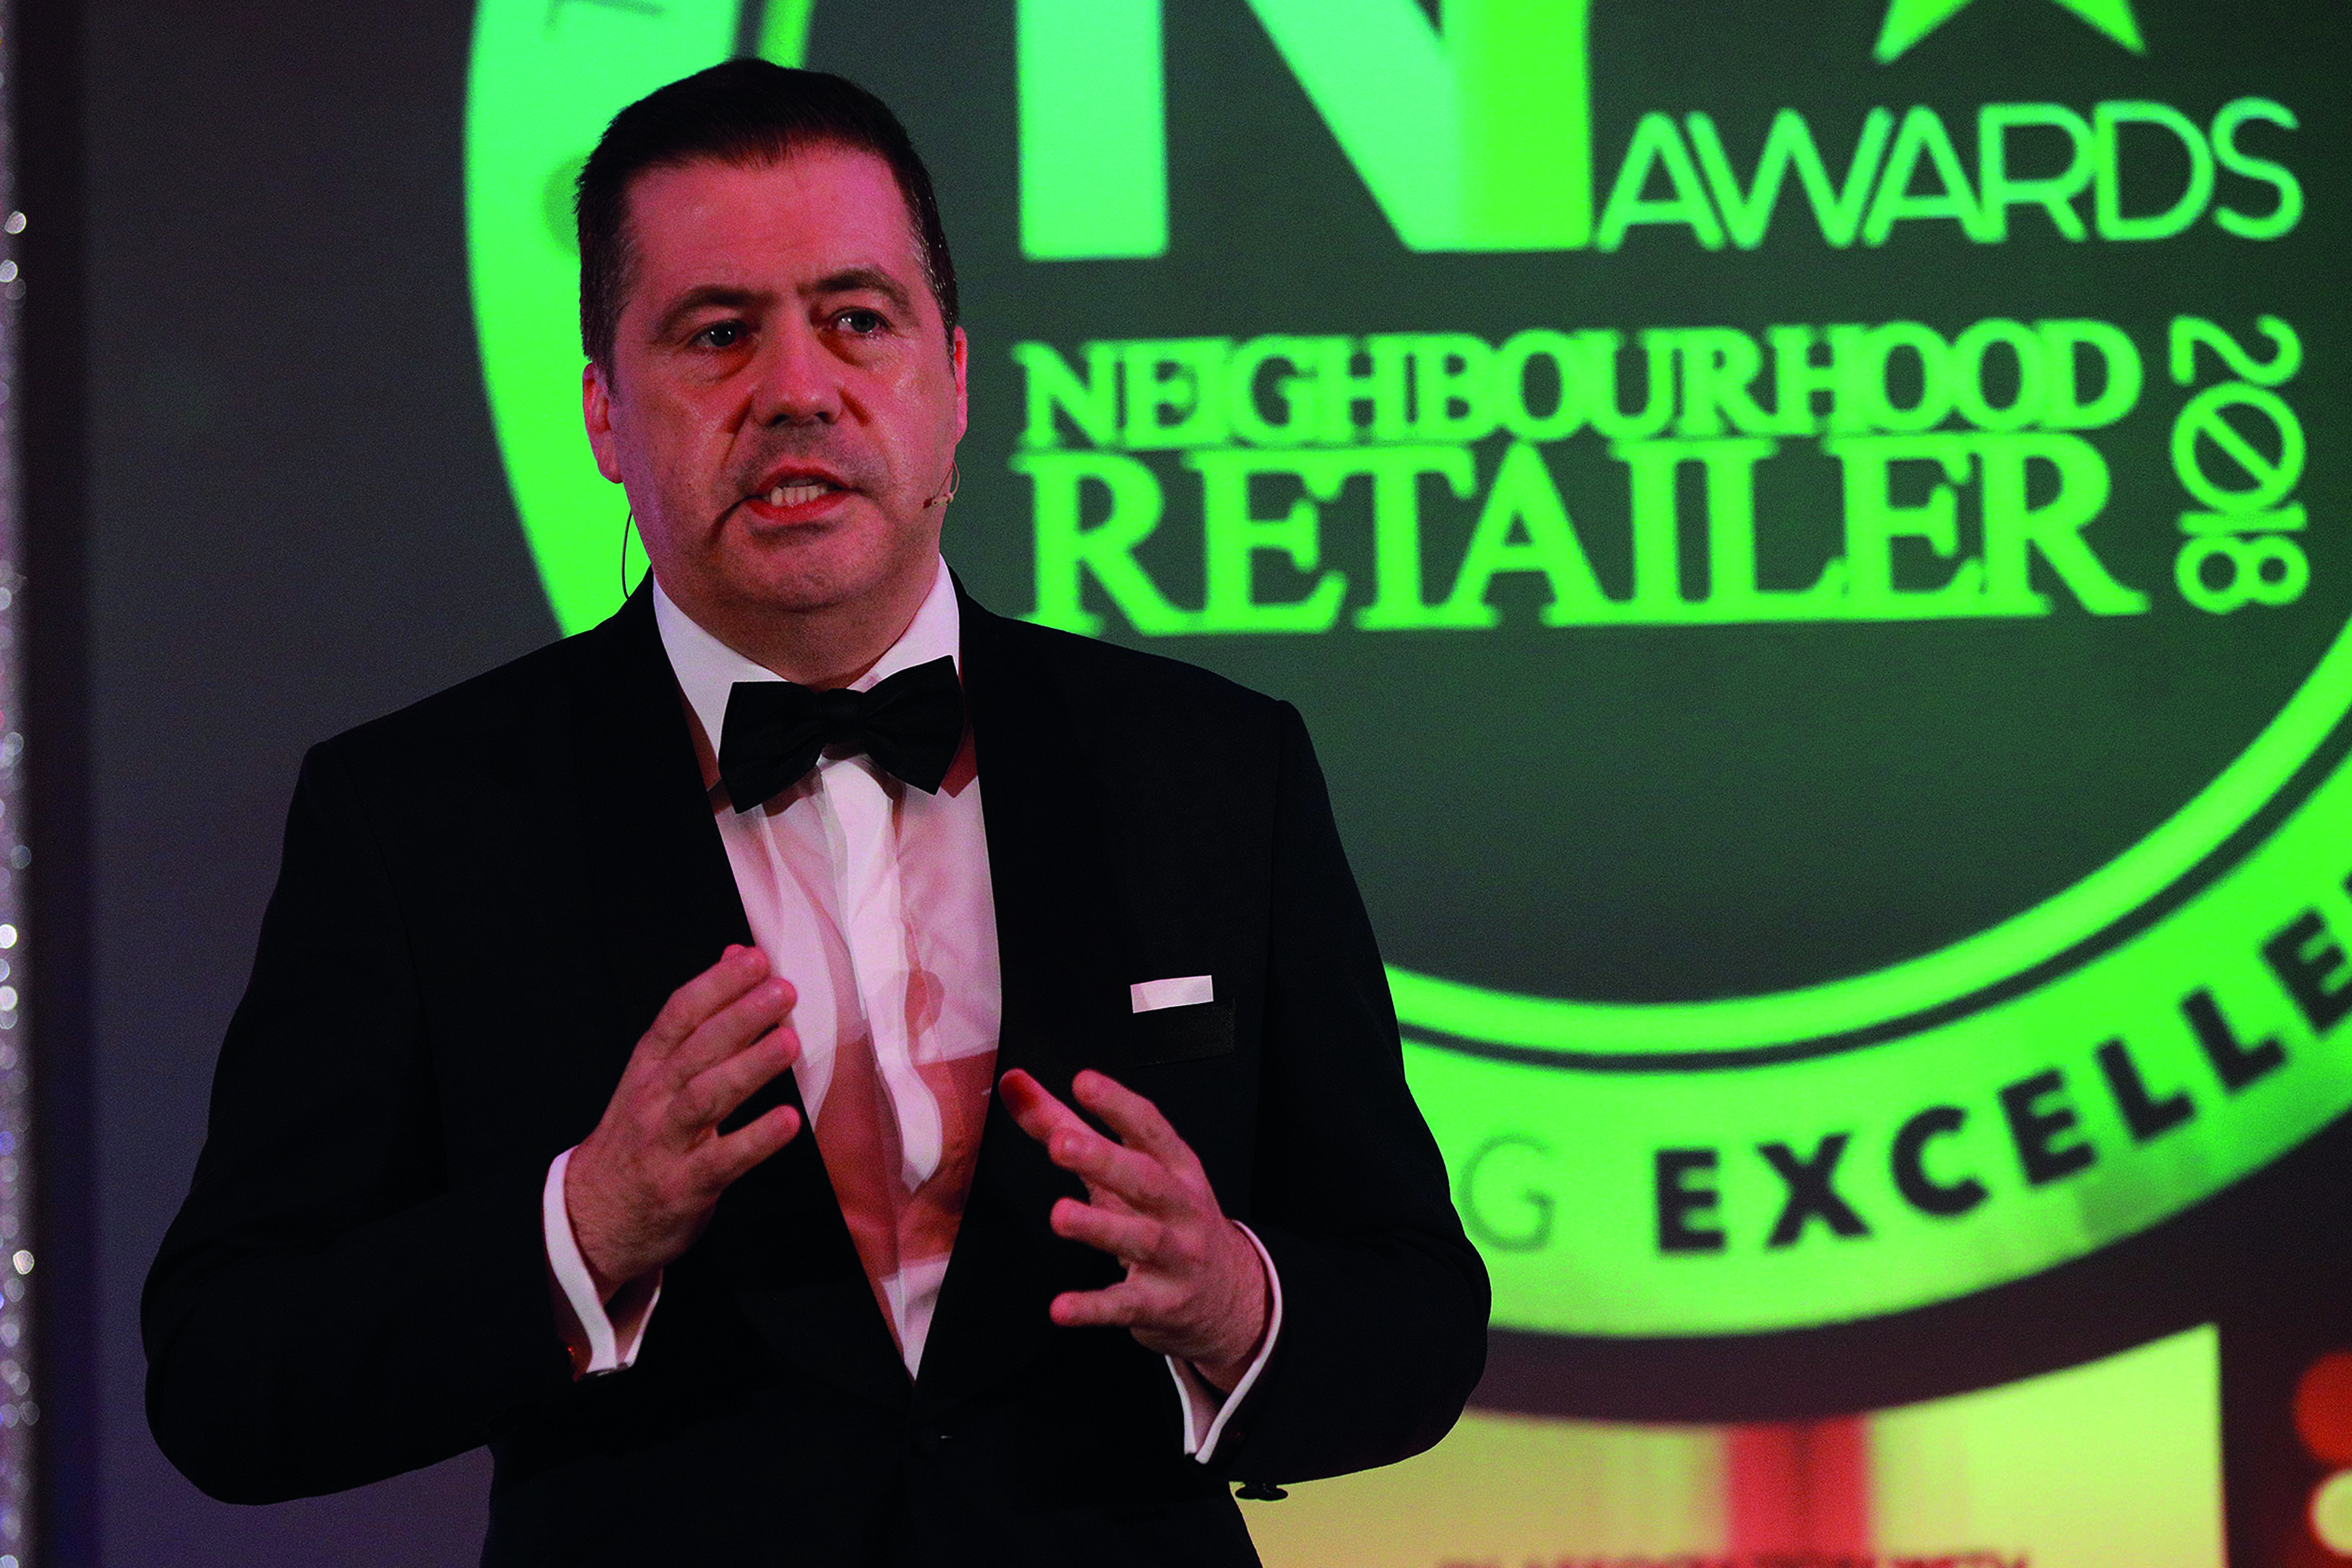 Putting the retail industry at the top of the agenda